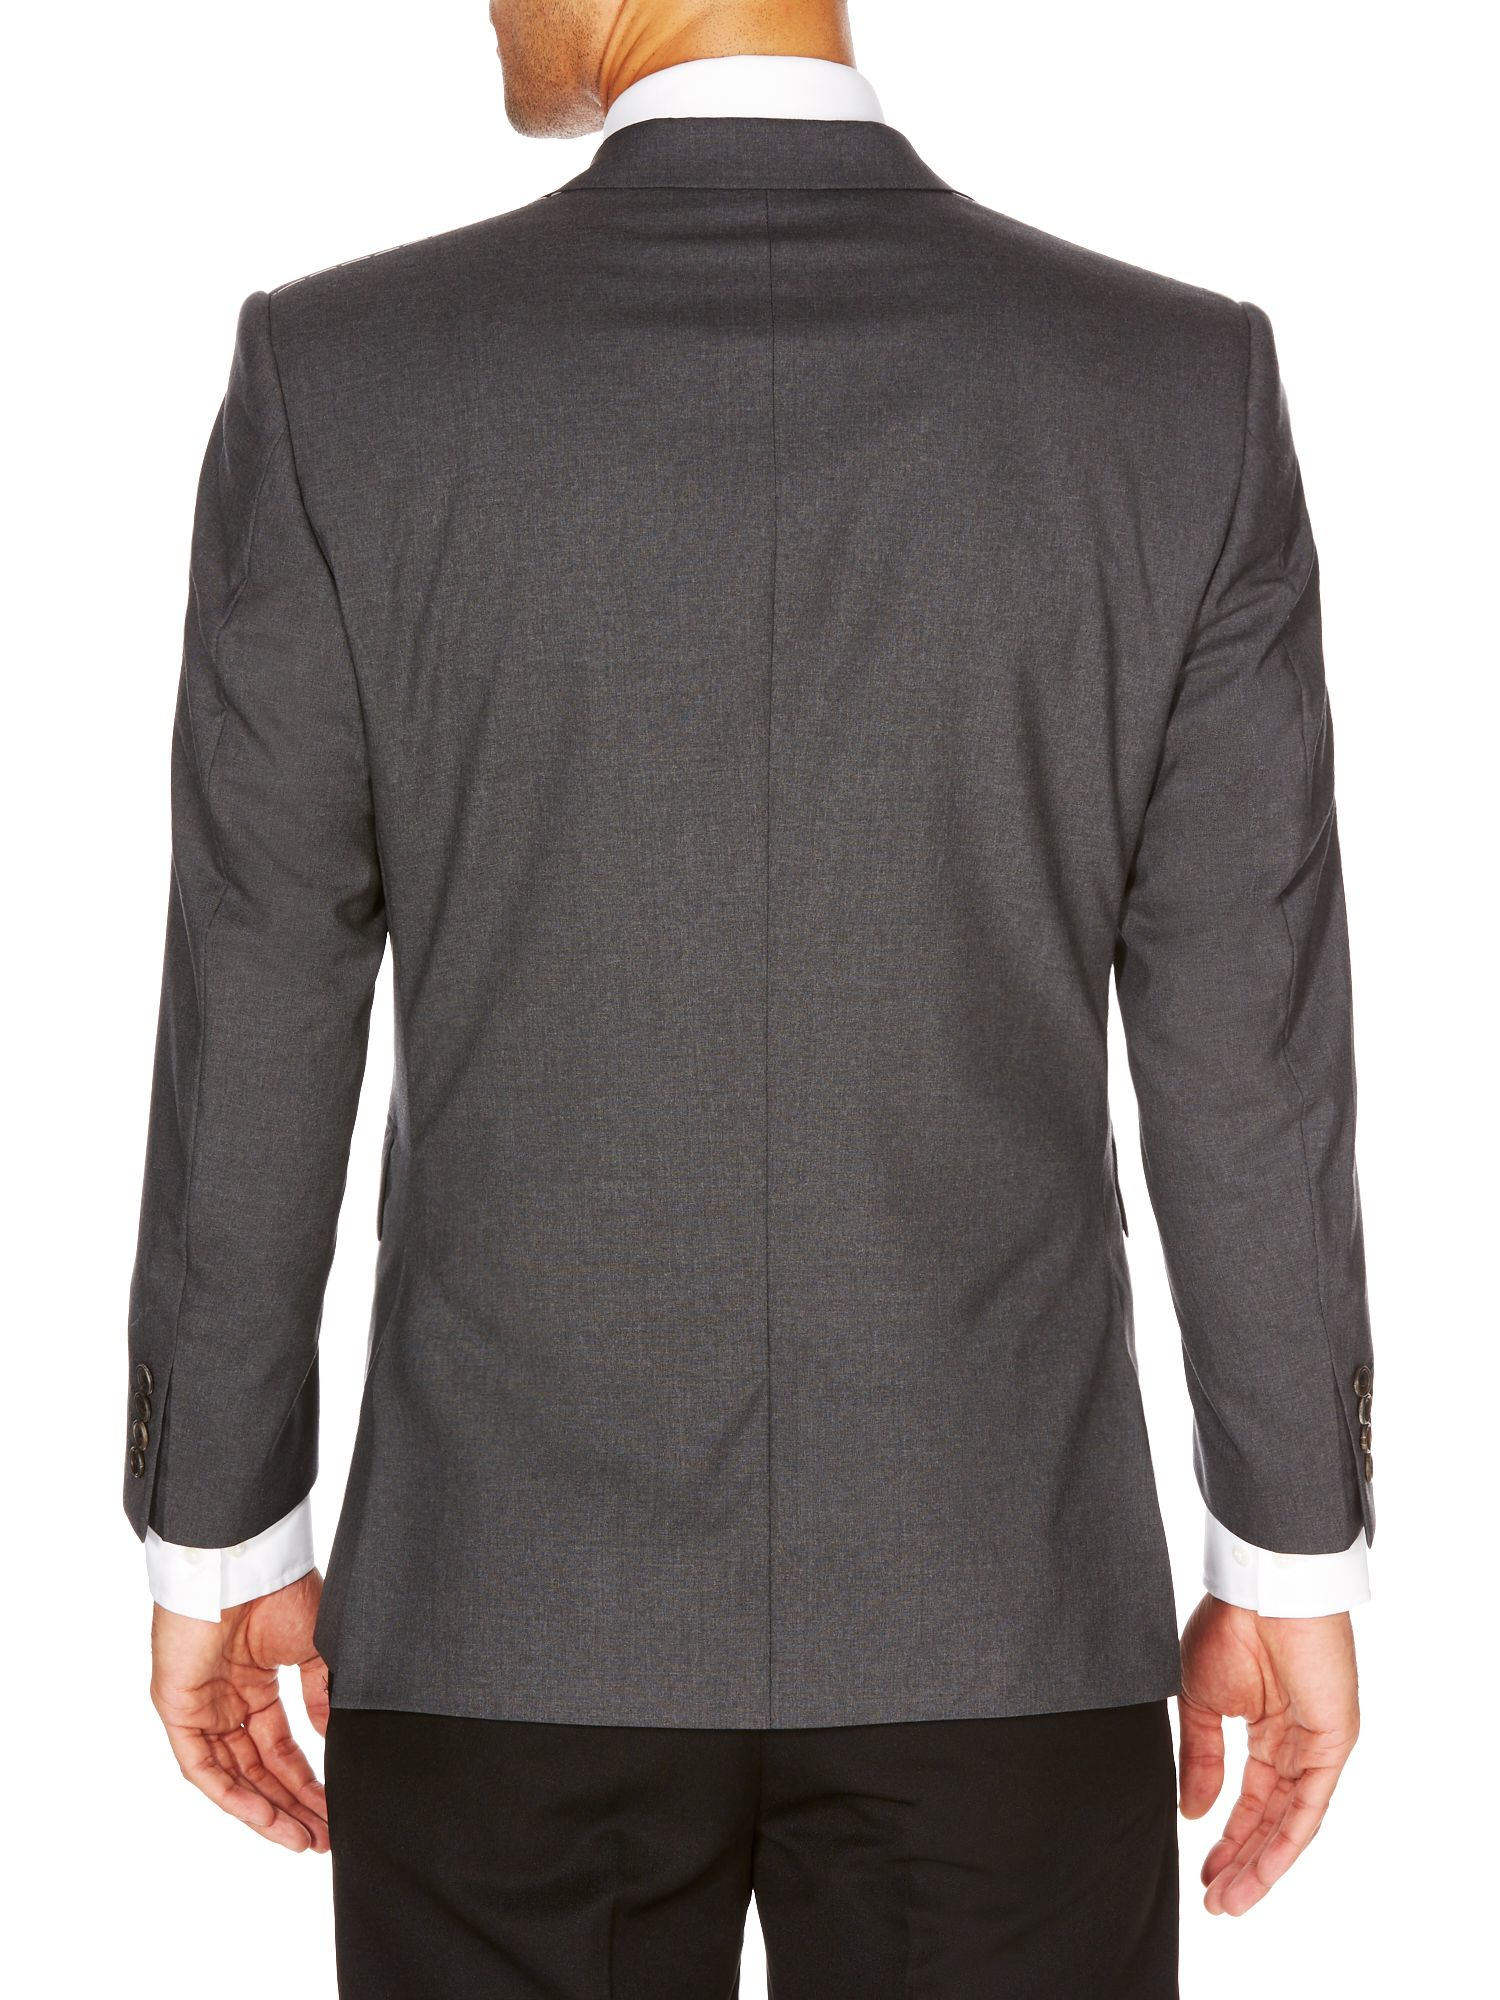 Chester barrie Plain Notch Collar Tailored Fit Suits in ...